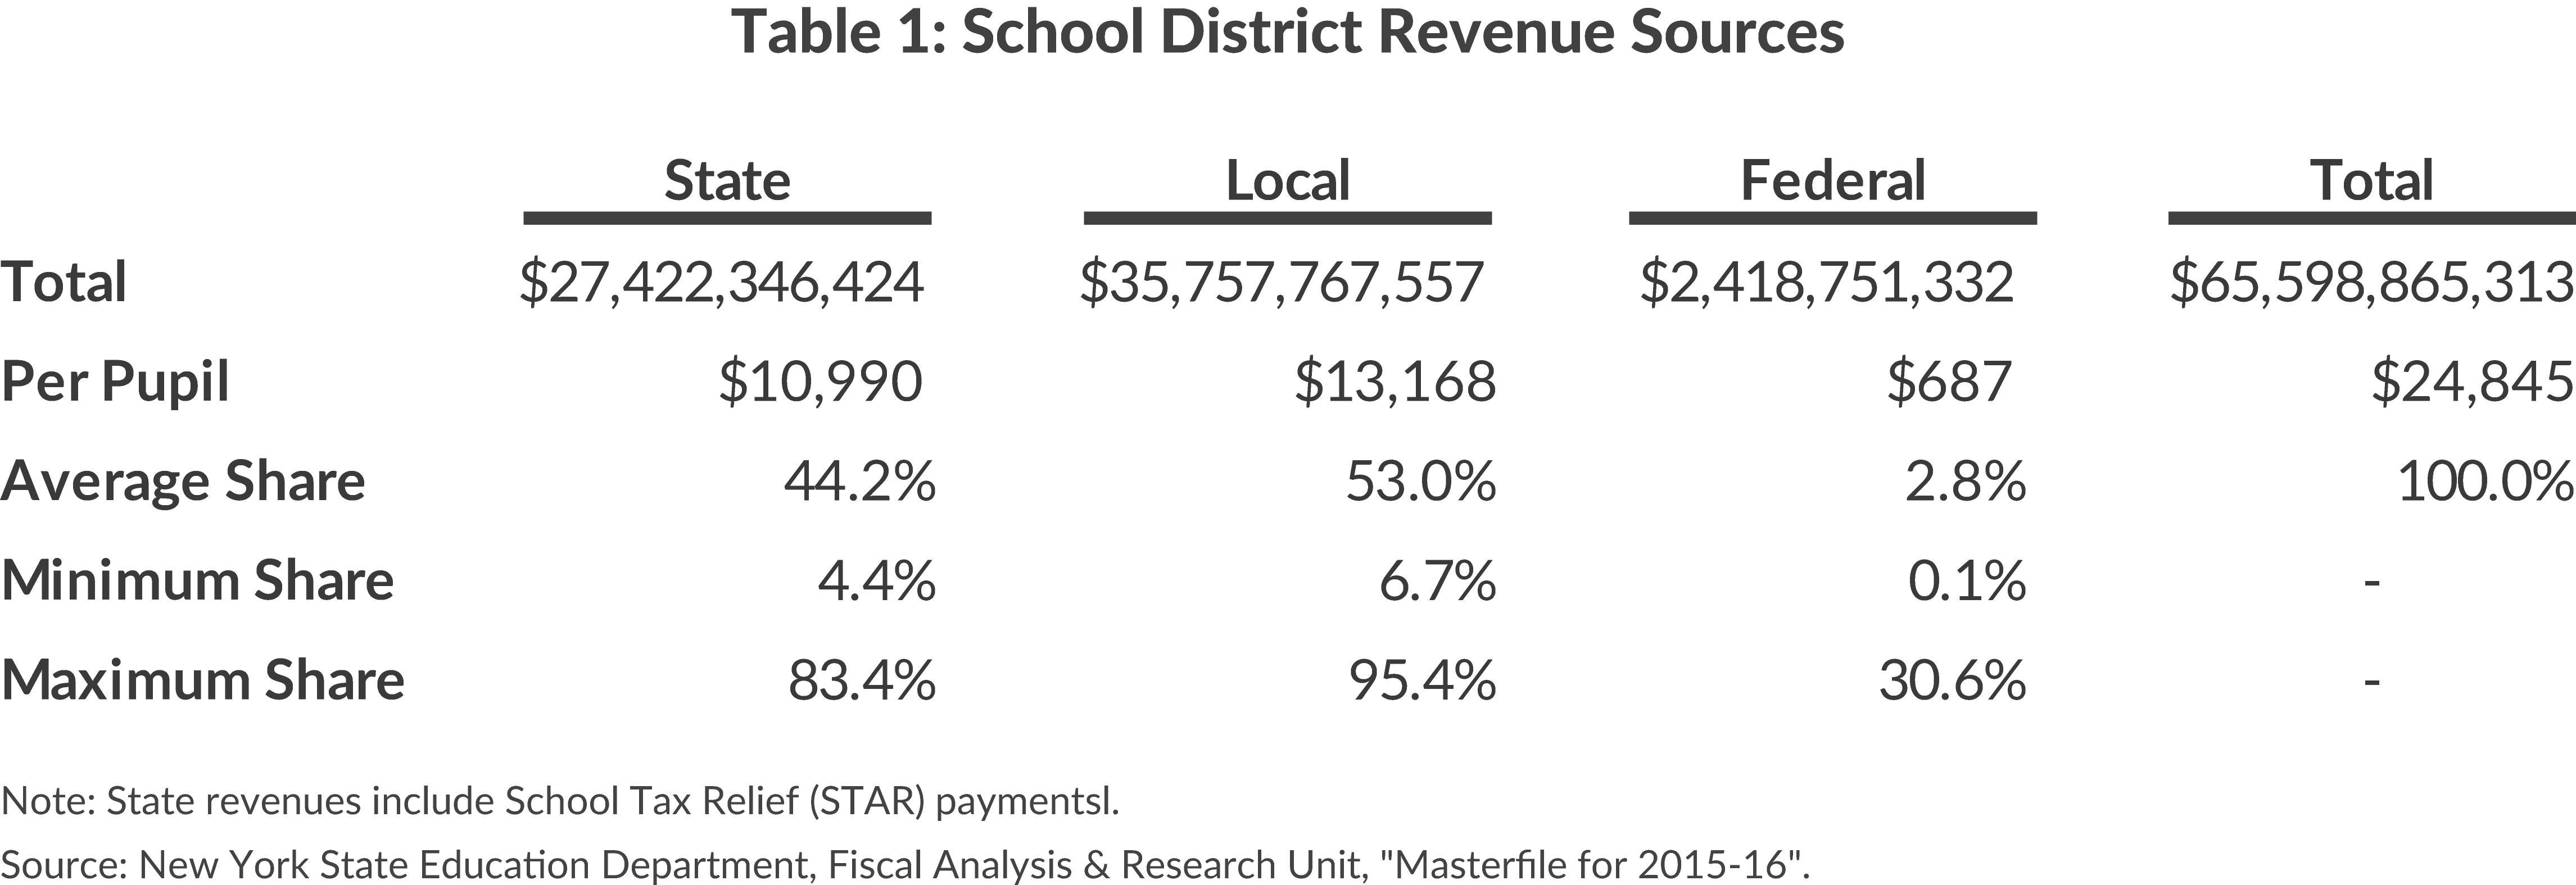 Table 1: School District Revenue Sources